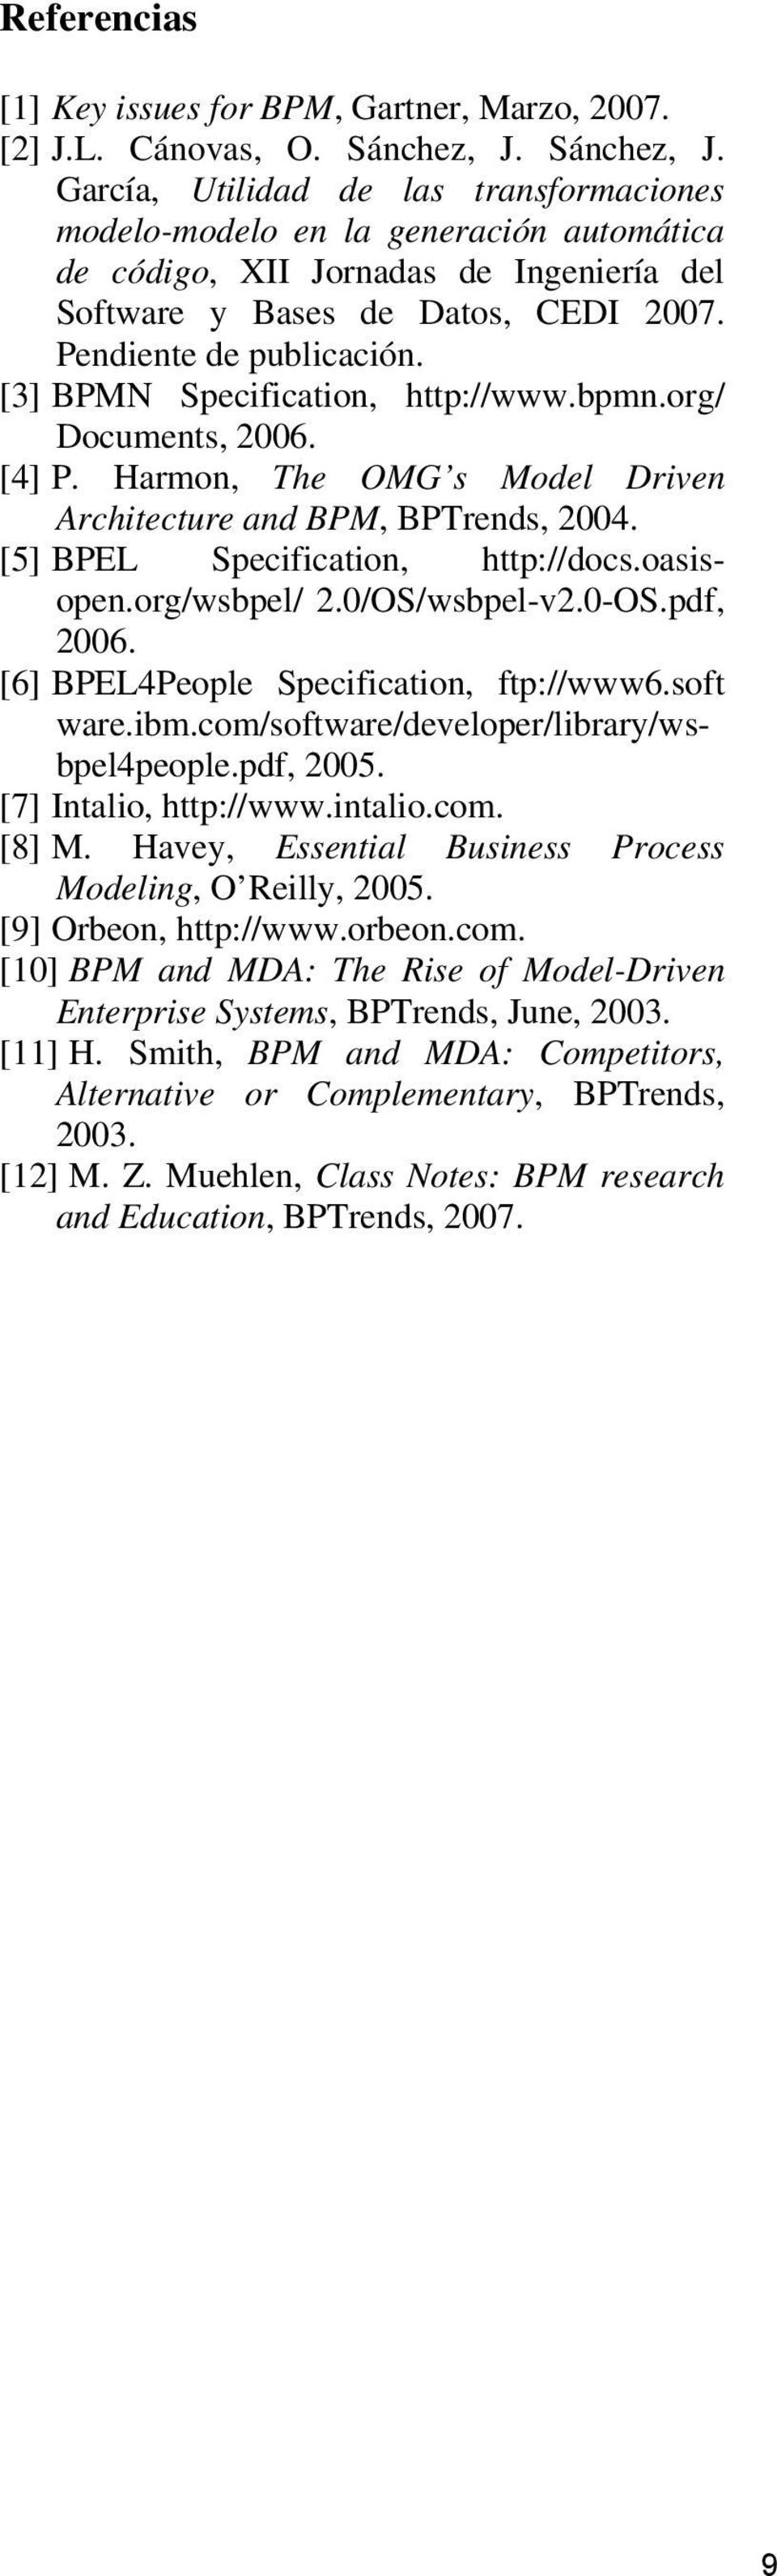 [3] BPMN Specification, http://www.bpmn.org/ Documents, 2006. [4] P. Harmon, The OMG s Model Driven Architecture and BPM, BPTrends, 2004. [5] BPEL Specification, http://docs.oasisopen.org/wsbpel/ 2.